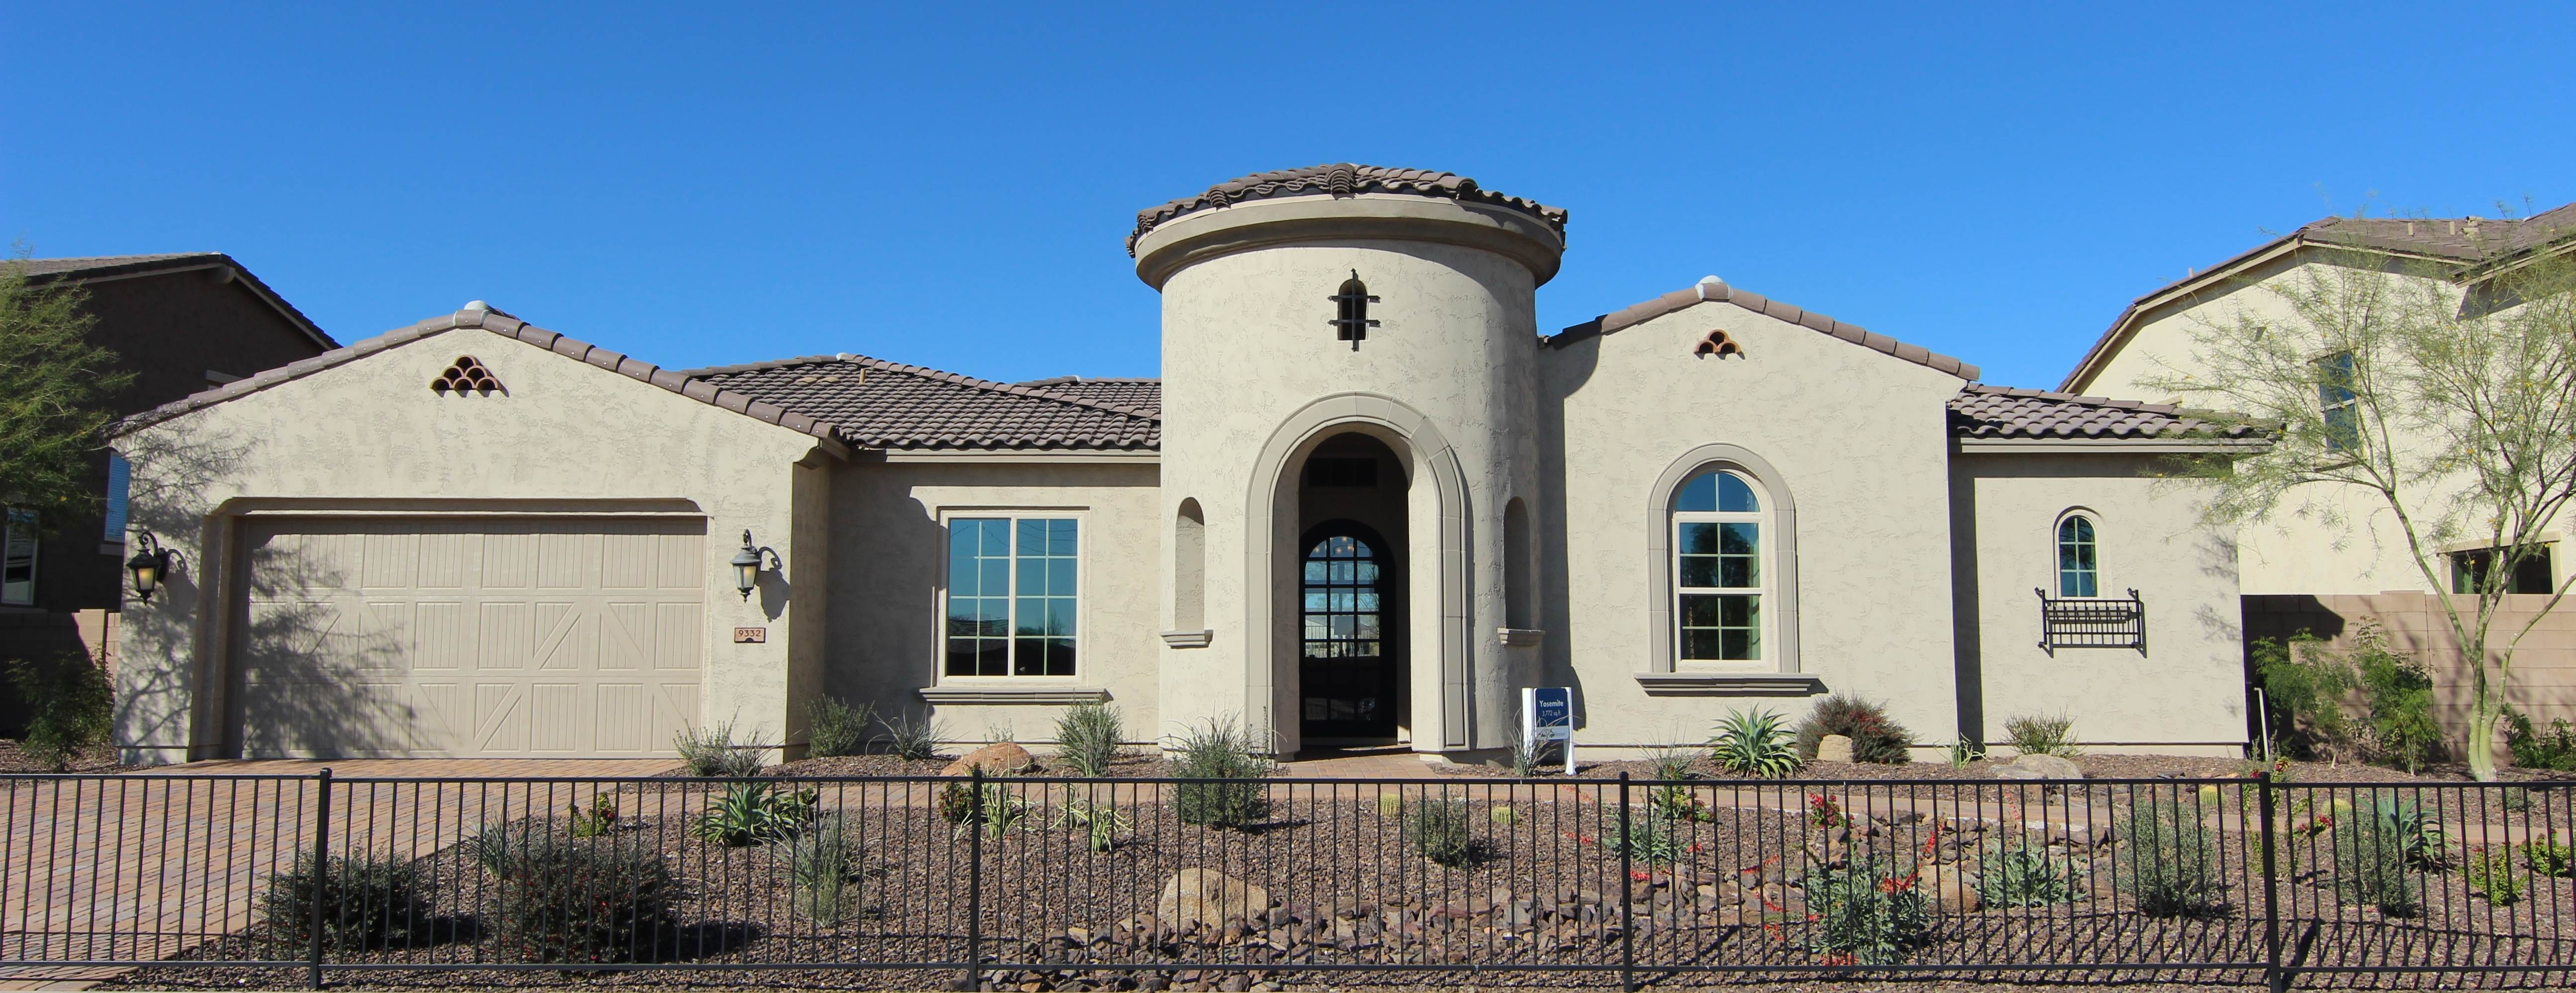 New Homes For Sale In Apache Junction Az